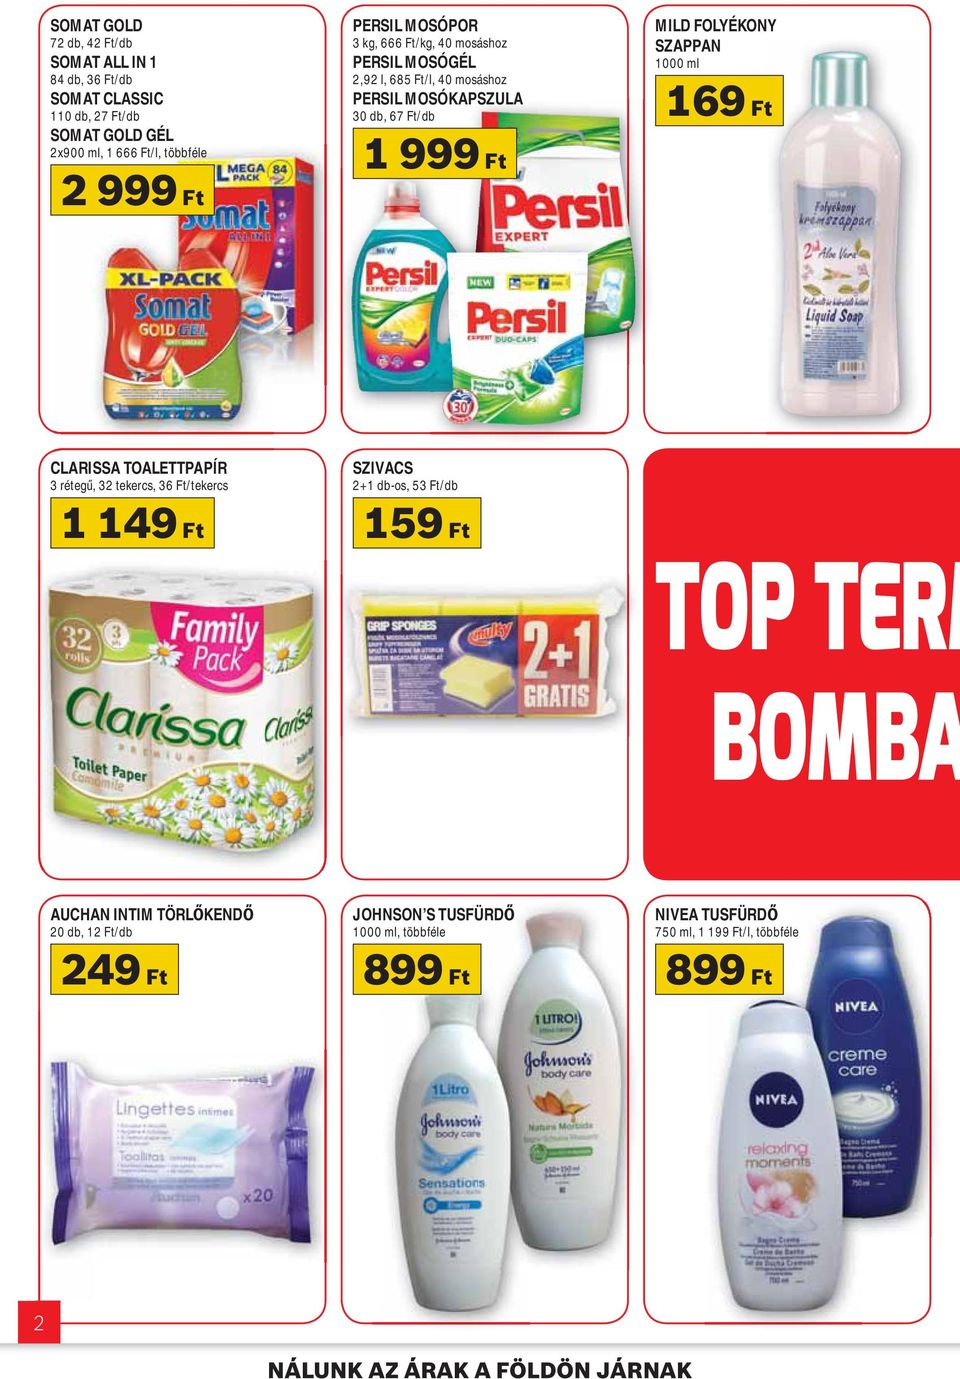 1000 ml 169 Ft CLARISSA TOALETTPAPÍR 3 réteg, 32 tekercs, 36 Ft/tekercs 1 149 Ft SZIVACS 2+1 db-os, 53 Ft/db 159 Ft TOP TERM BOMBA AUCHAN INTIM TÖRL